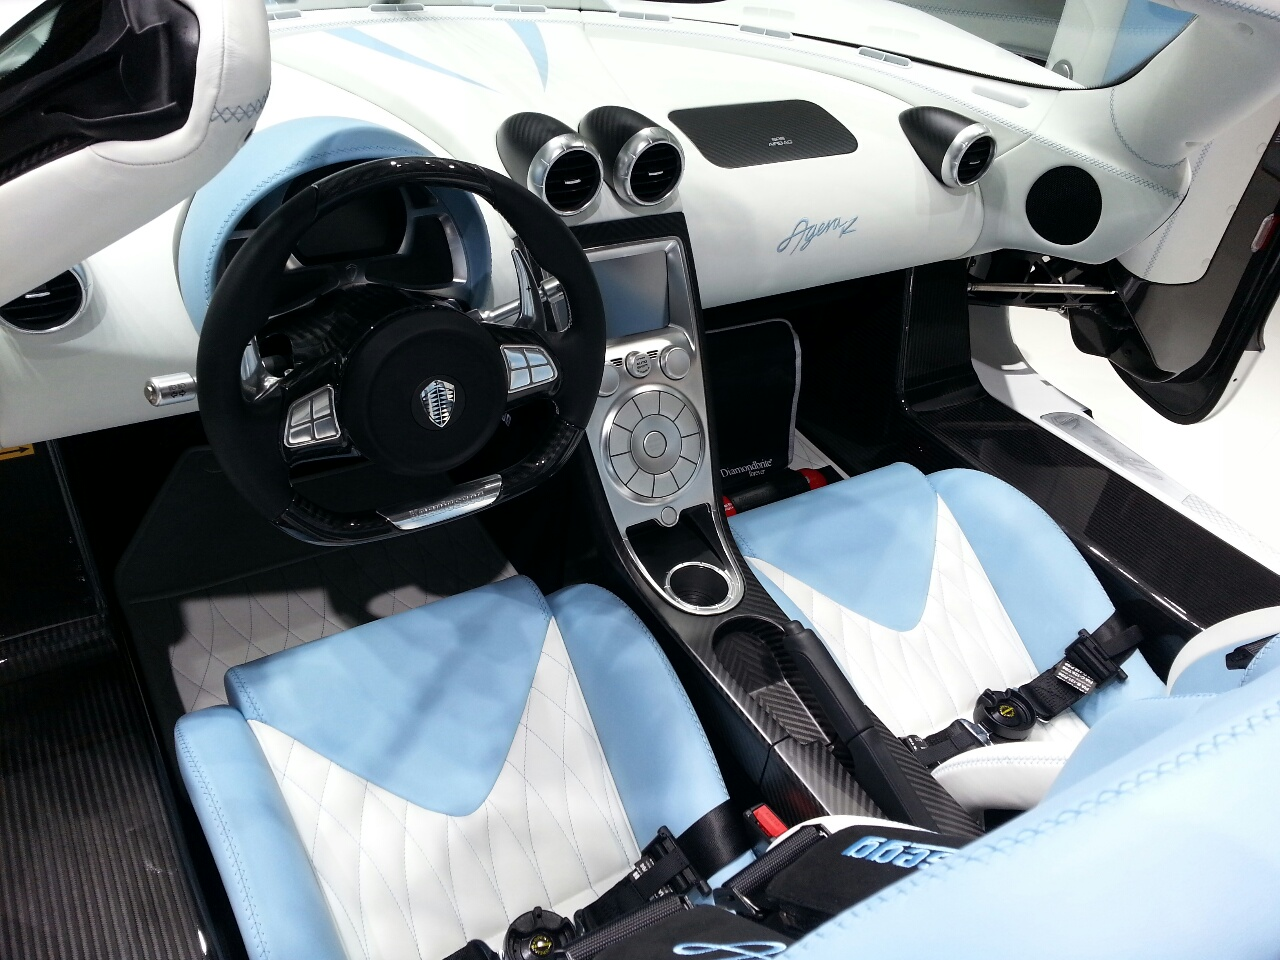 New Koenigsegg Agera Interior Overview